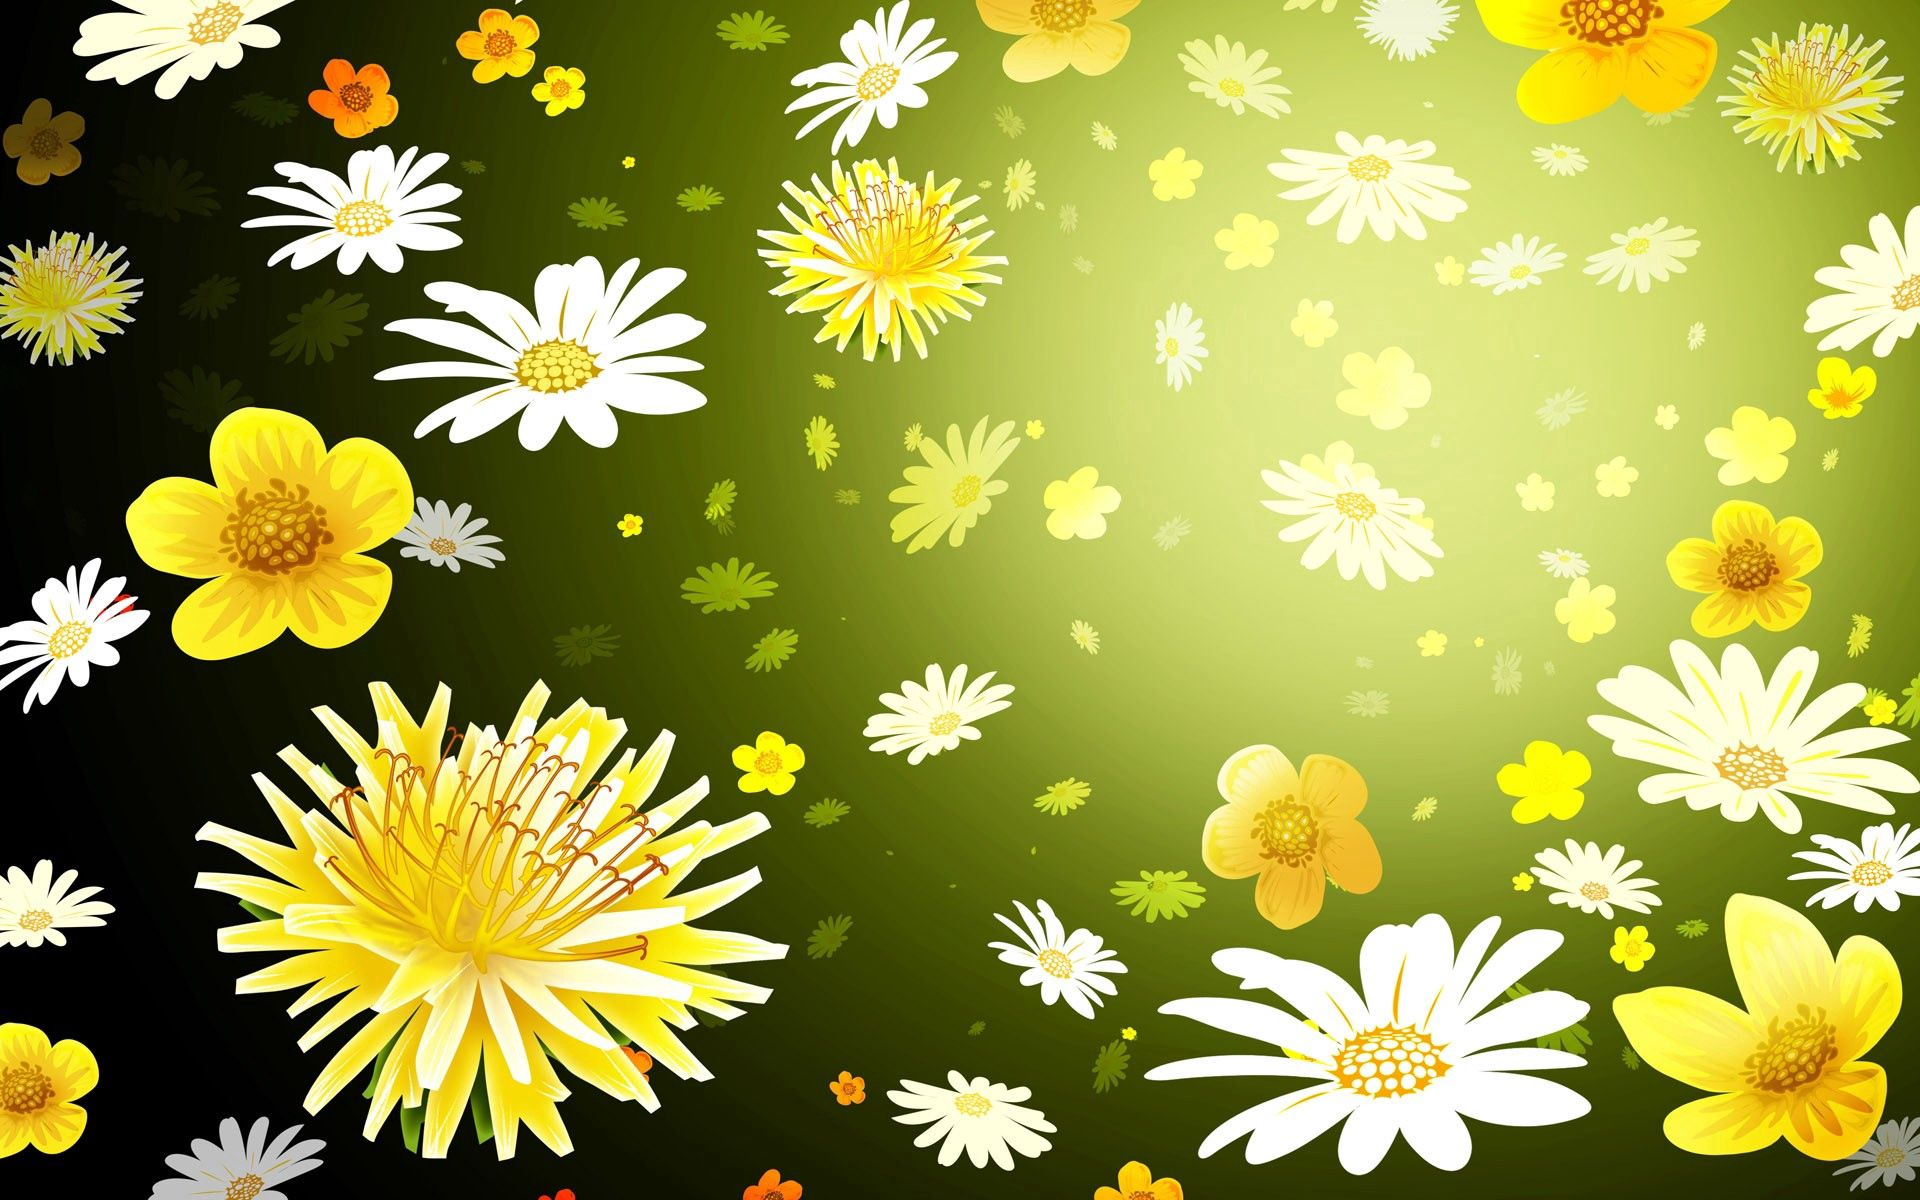 119717 download wallpaper Background, Flowers, Dandelions, Camomile, Texture, Textures, Picture, Drawing screensavers and pictures for free